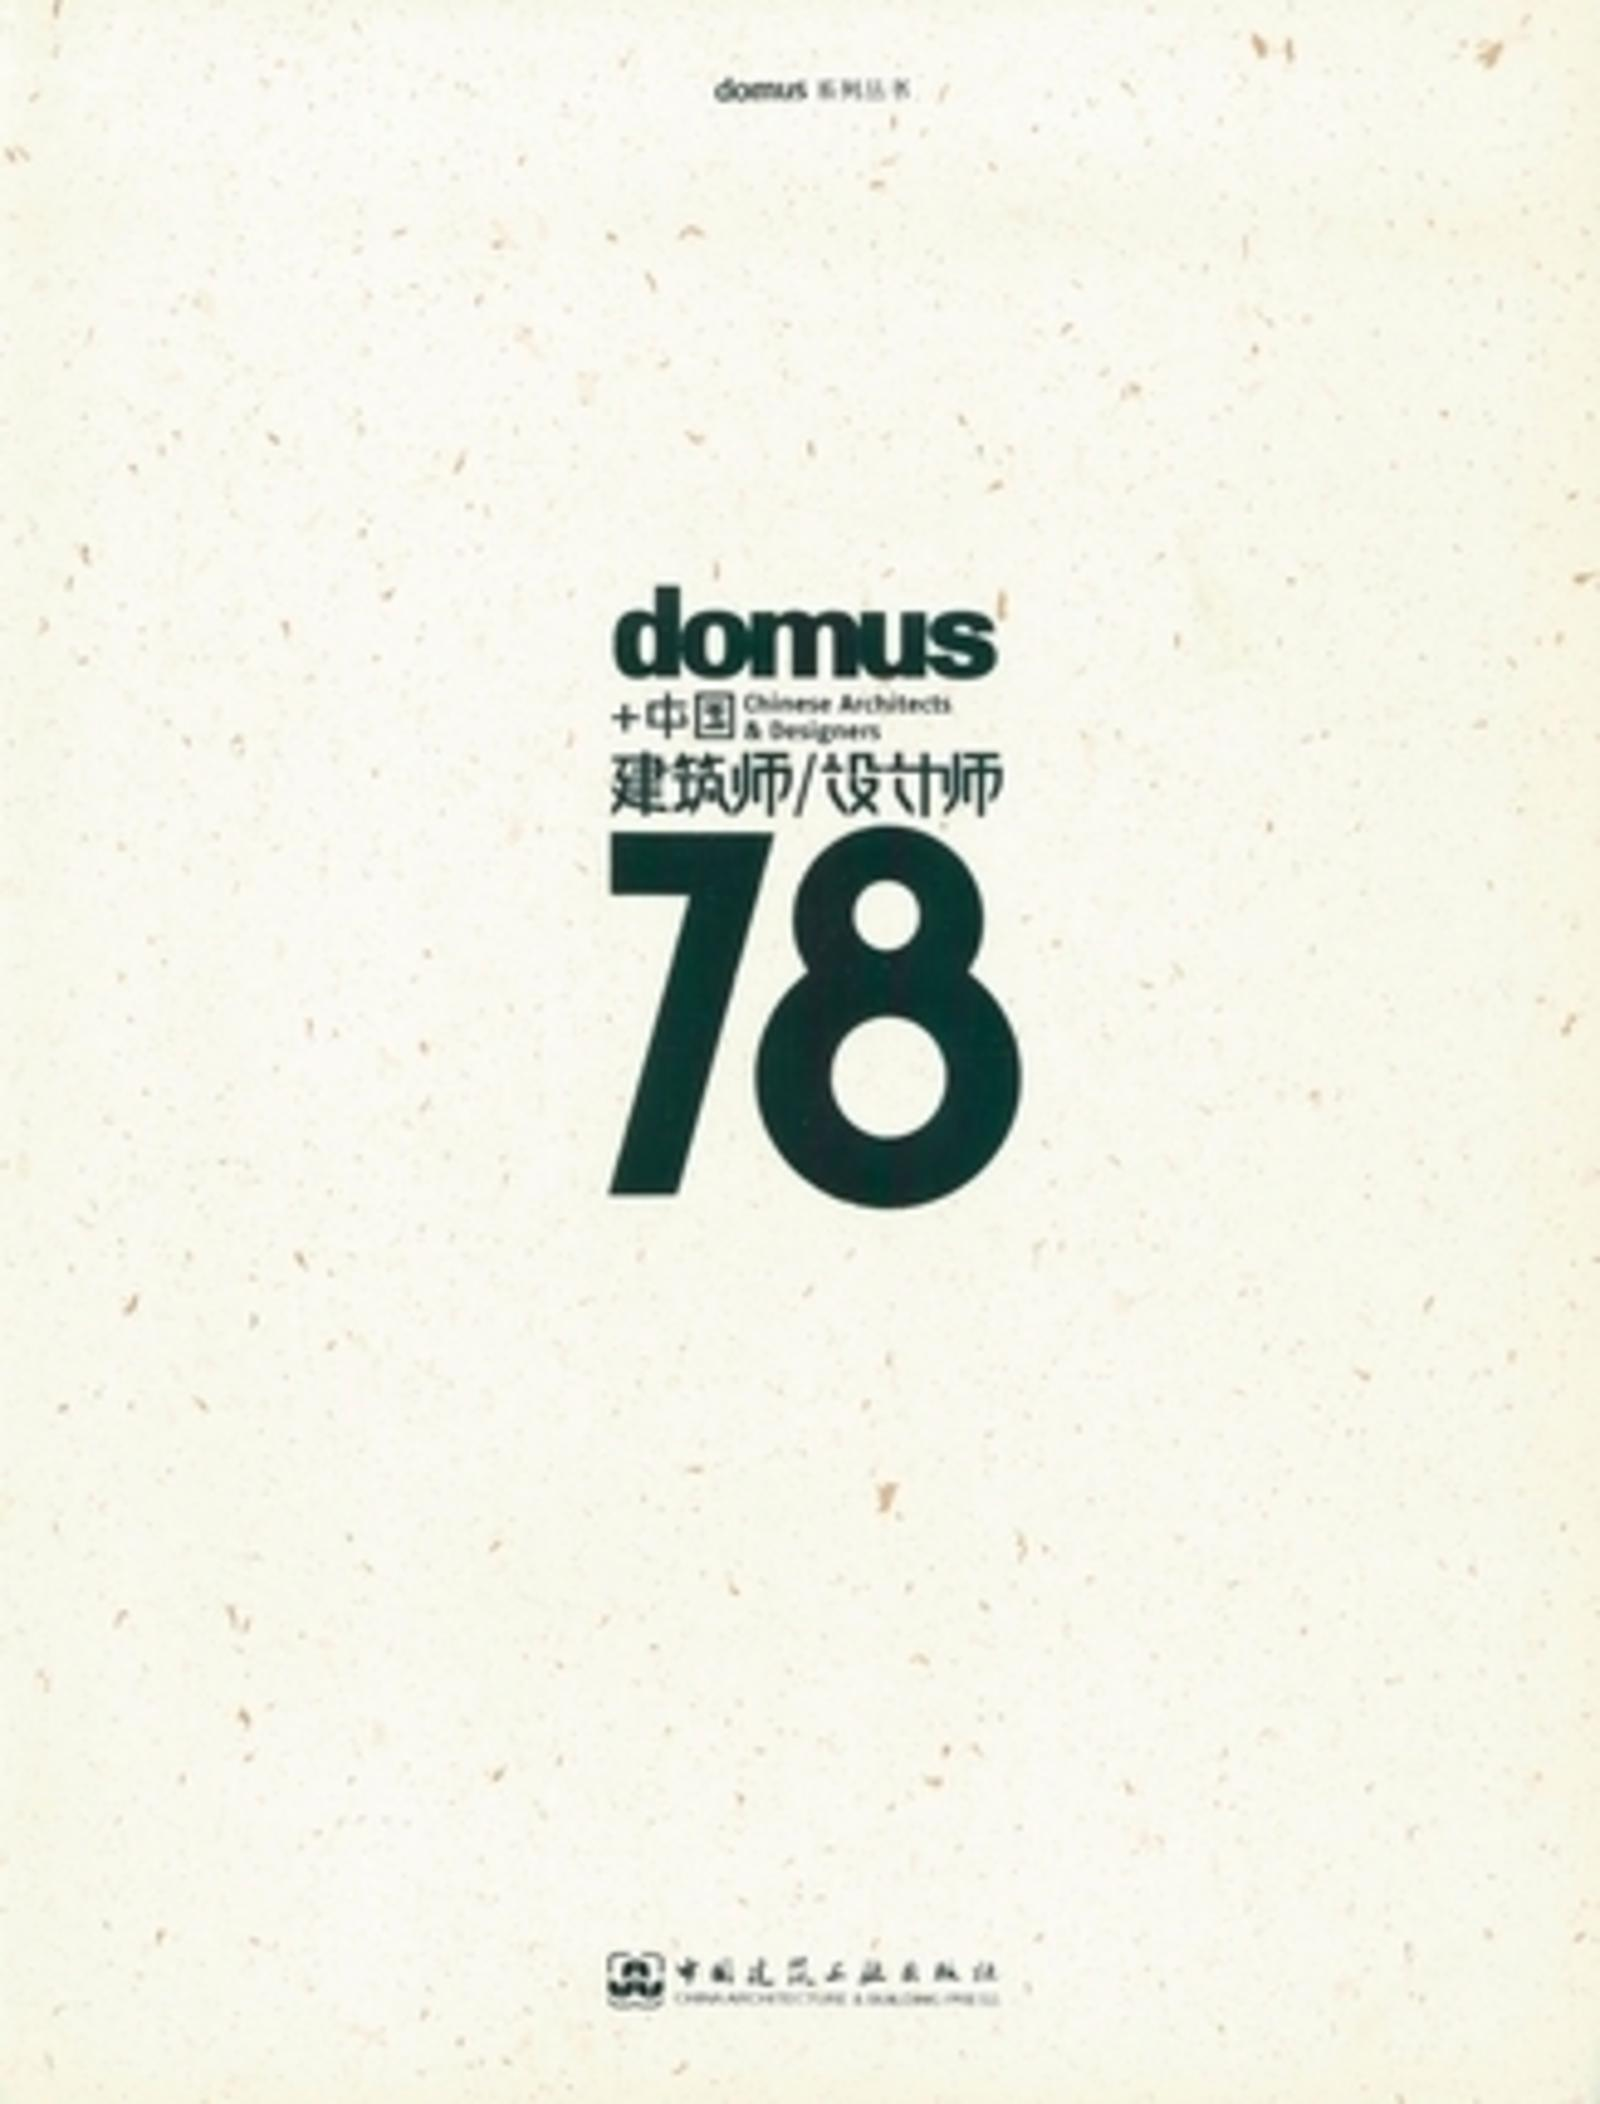 DOMUS 78 + CHINESE ARCHITECTS AND DESIGNERS - ARCHITECTES ETDESIGNERS CHINOIS